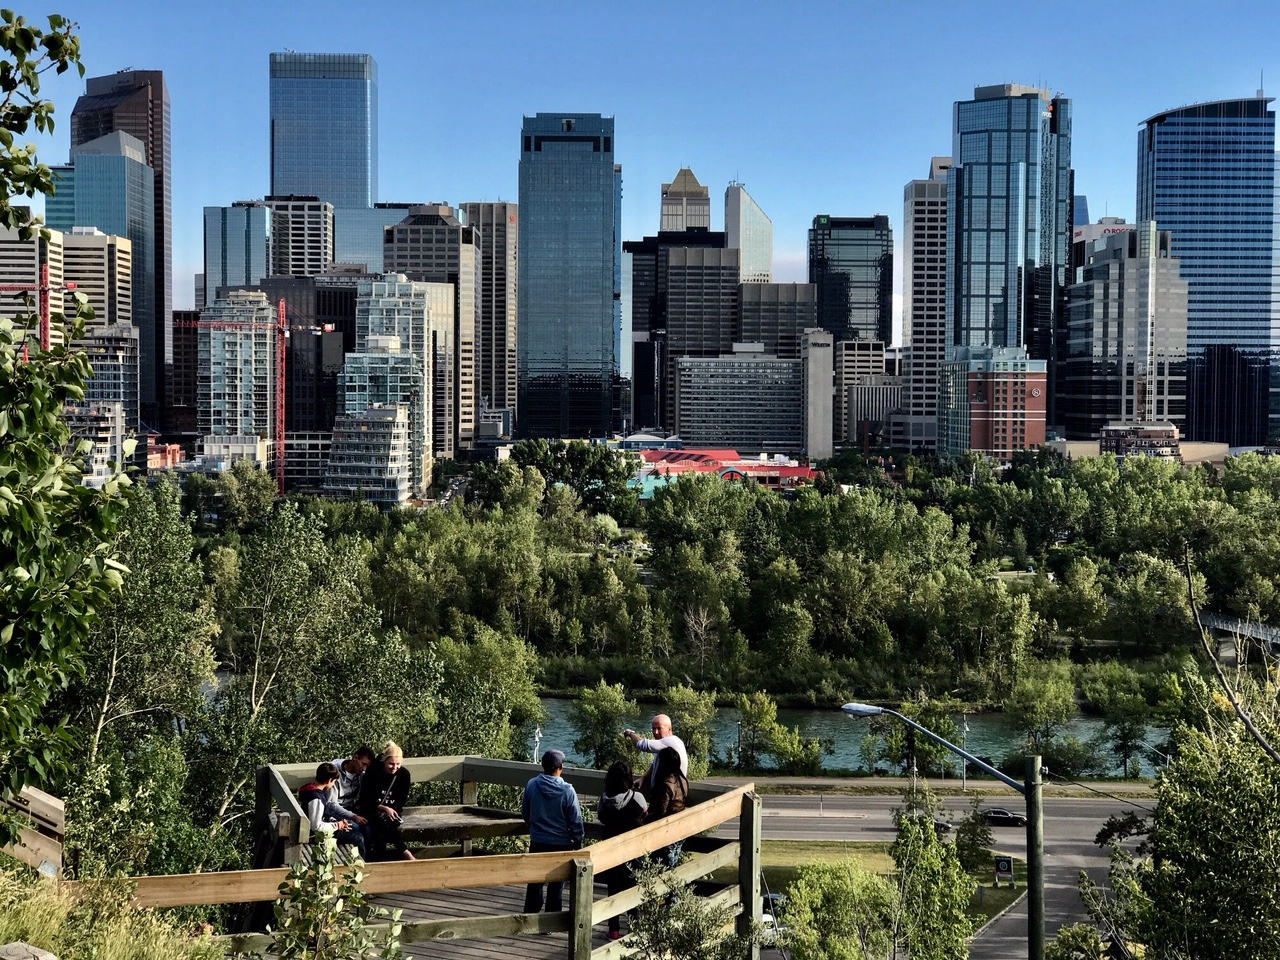 The climb to the top is worth it as it offer a spectacular view of the city's skyline, the mountains and the Bow River valley.